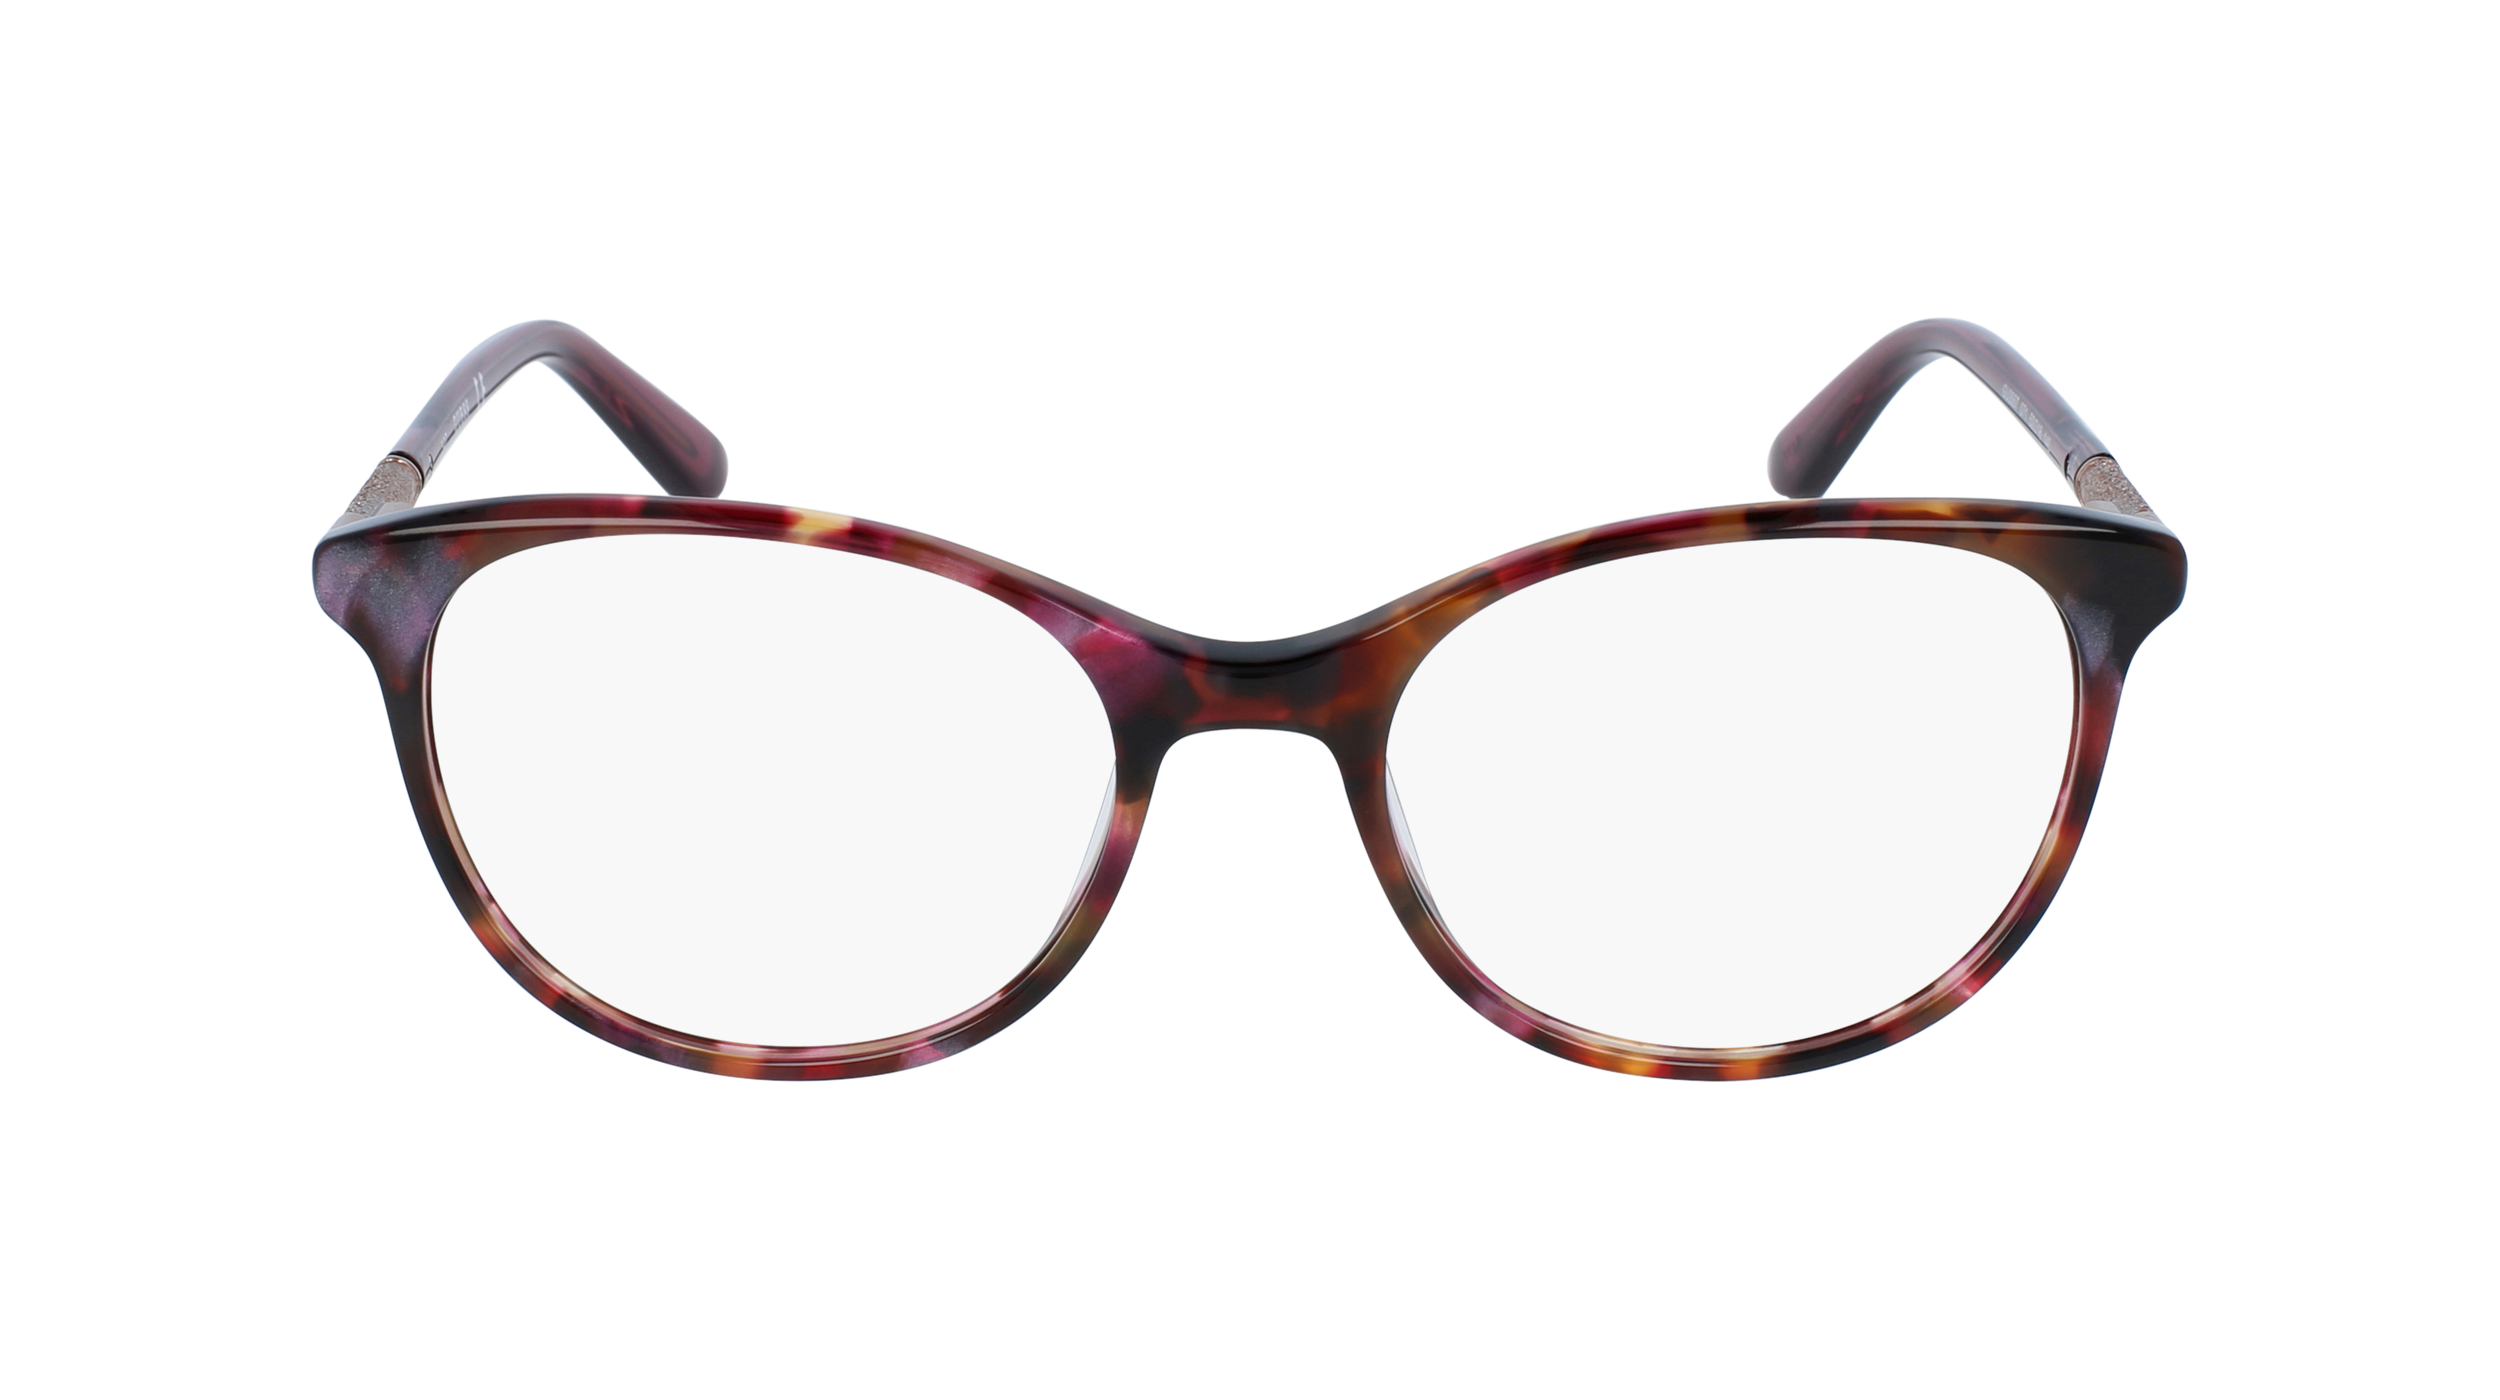 Optic2000 Lunettes Guess